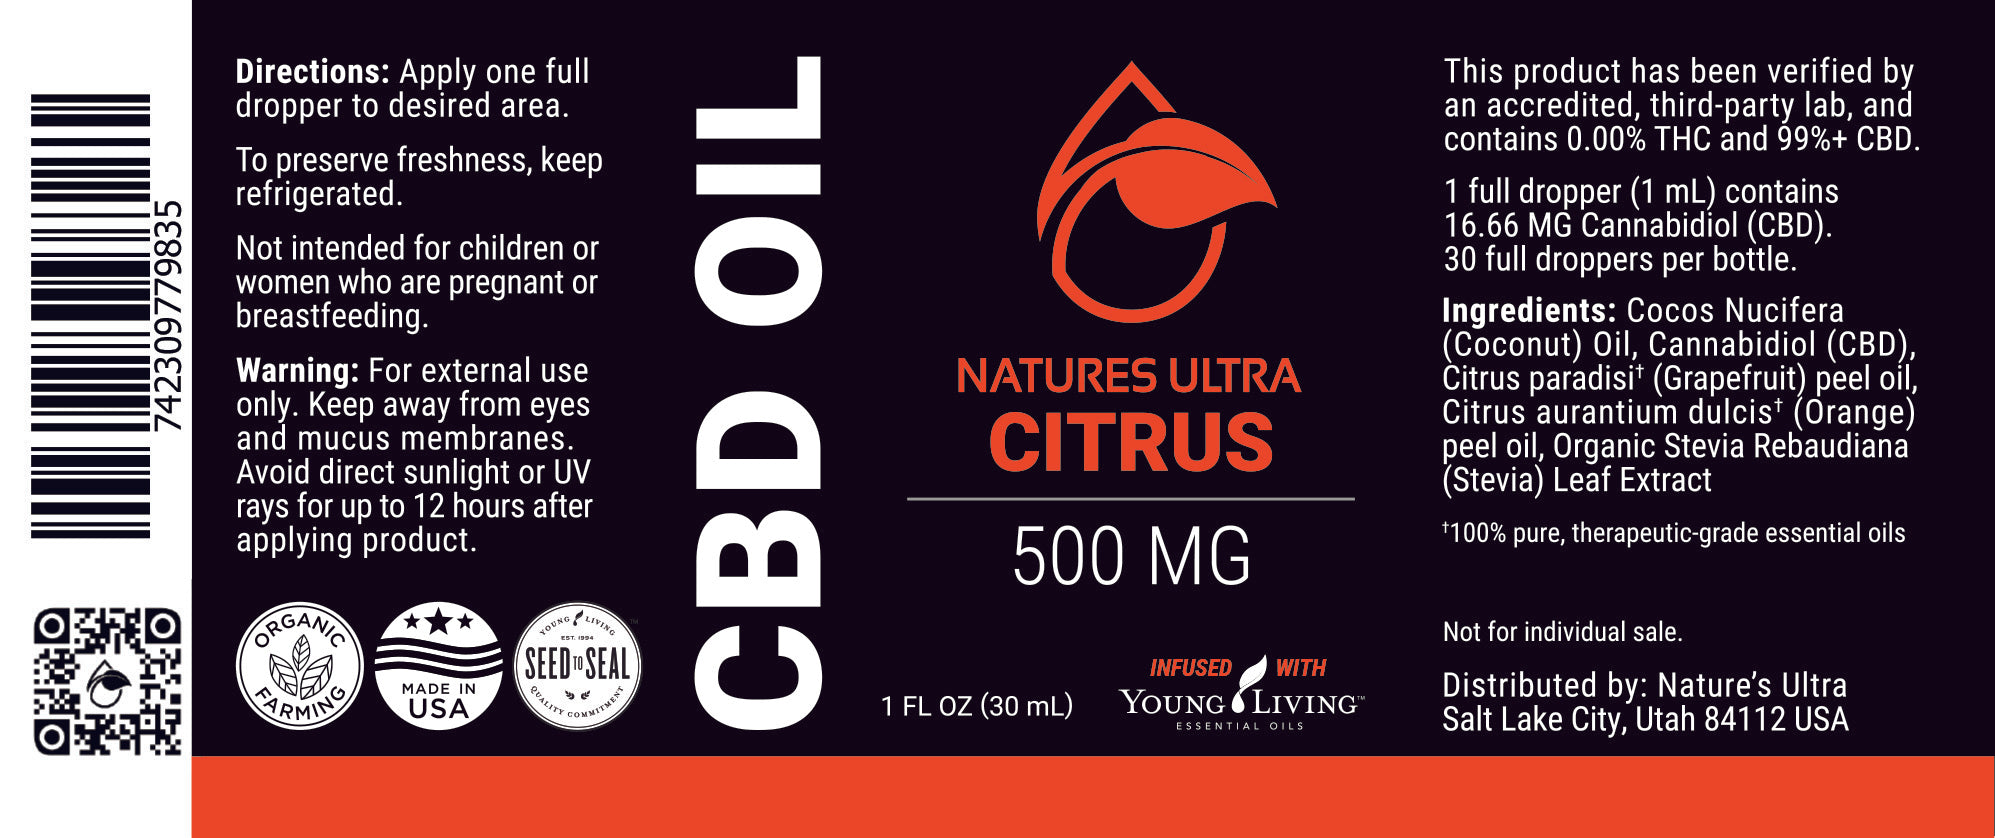 Citrus CBD Oil Label from Nature's Ultra